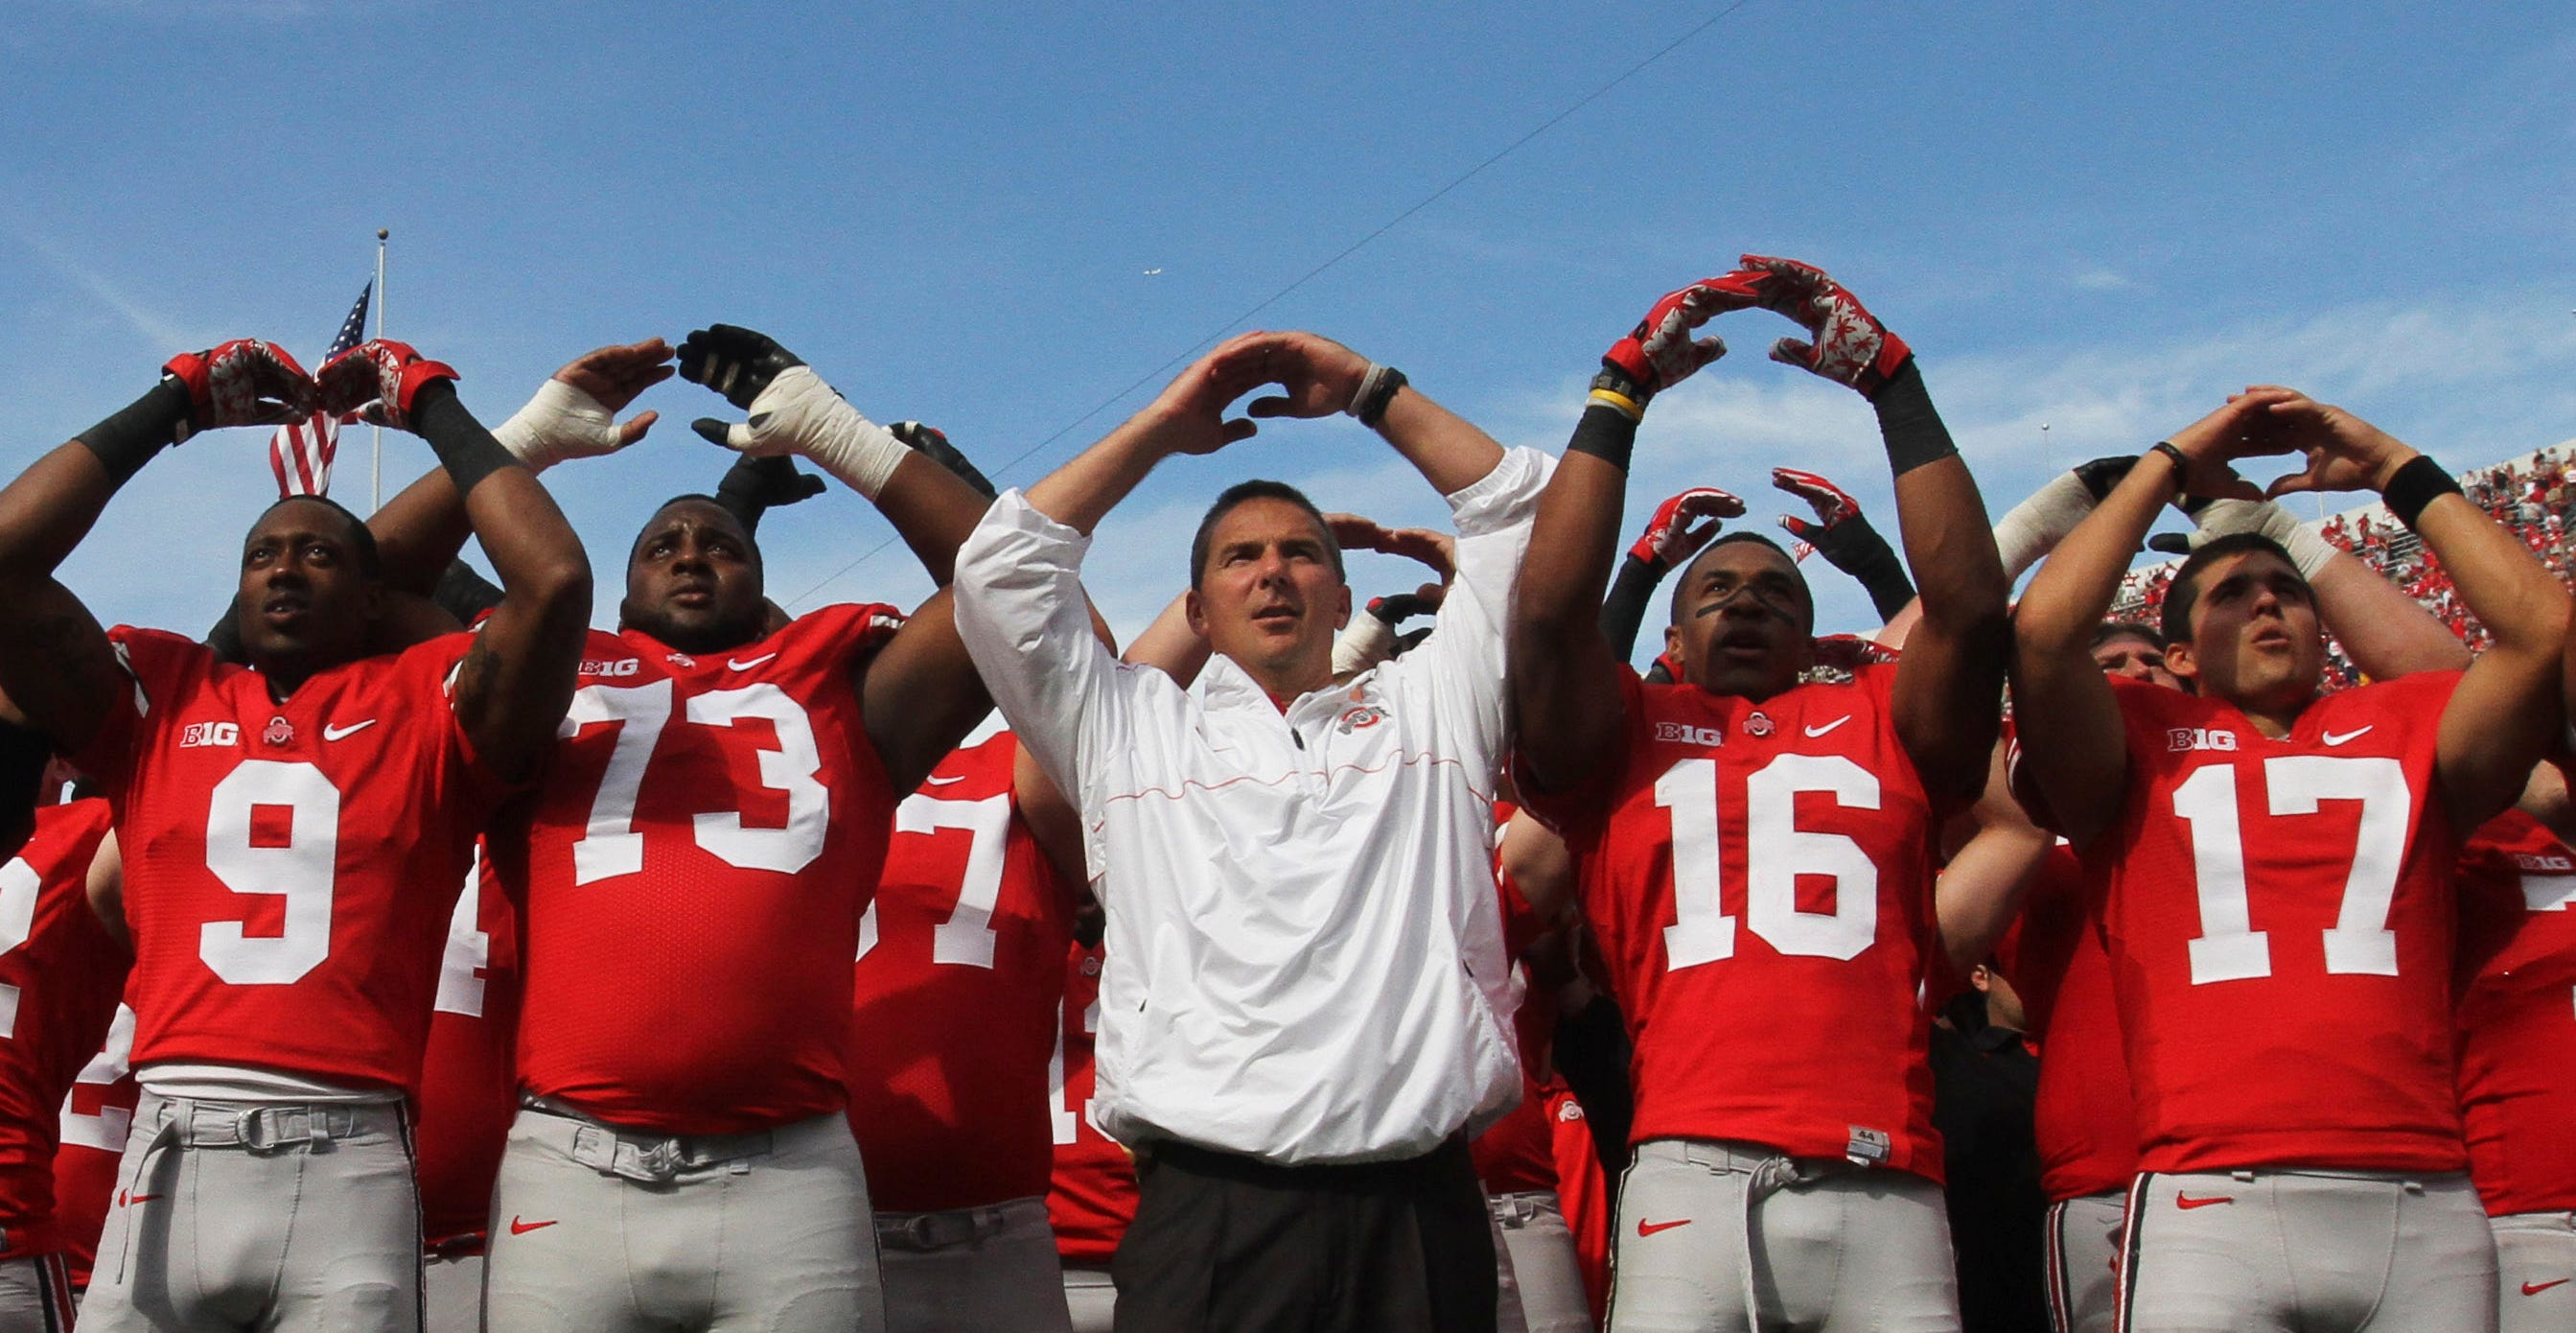 Despite the team's 12-0 record, Urban Meyer felt the 2012 Buckeyes had much work to do to compete with national college football powers.